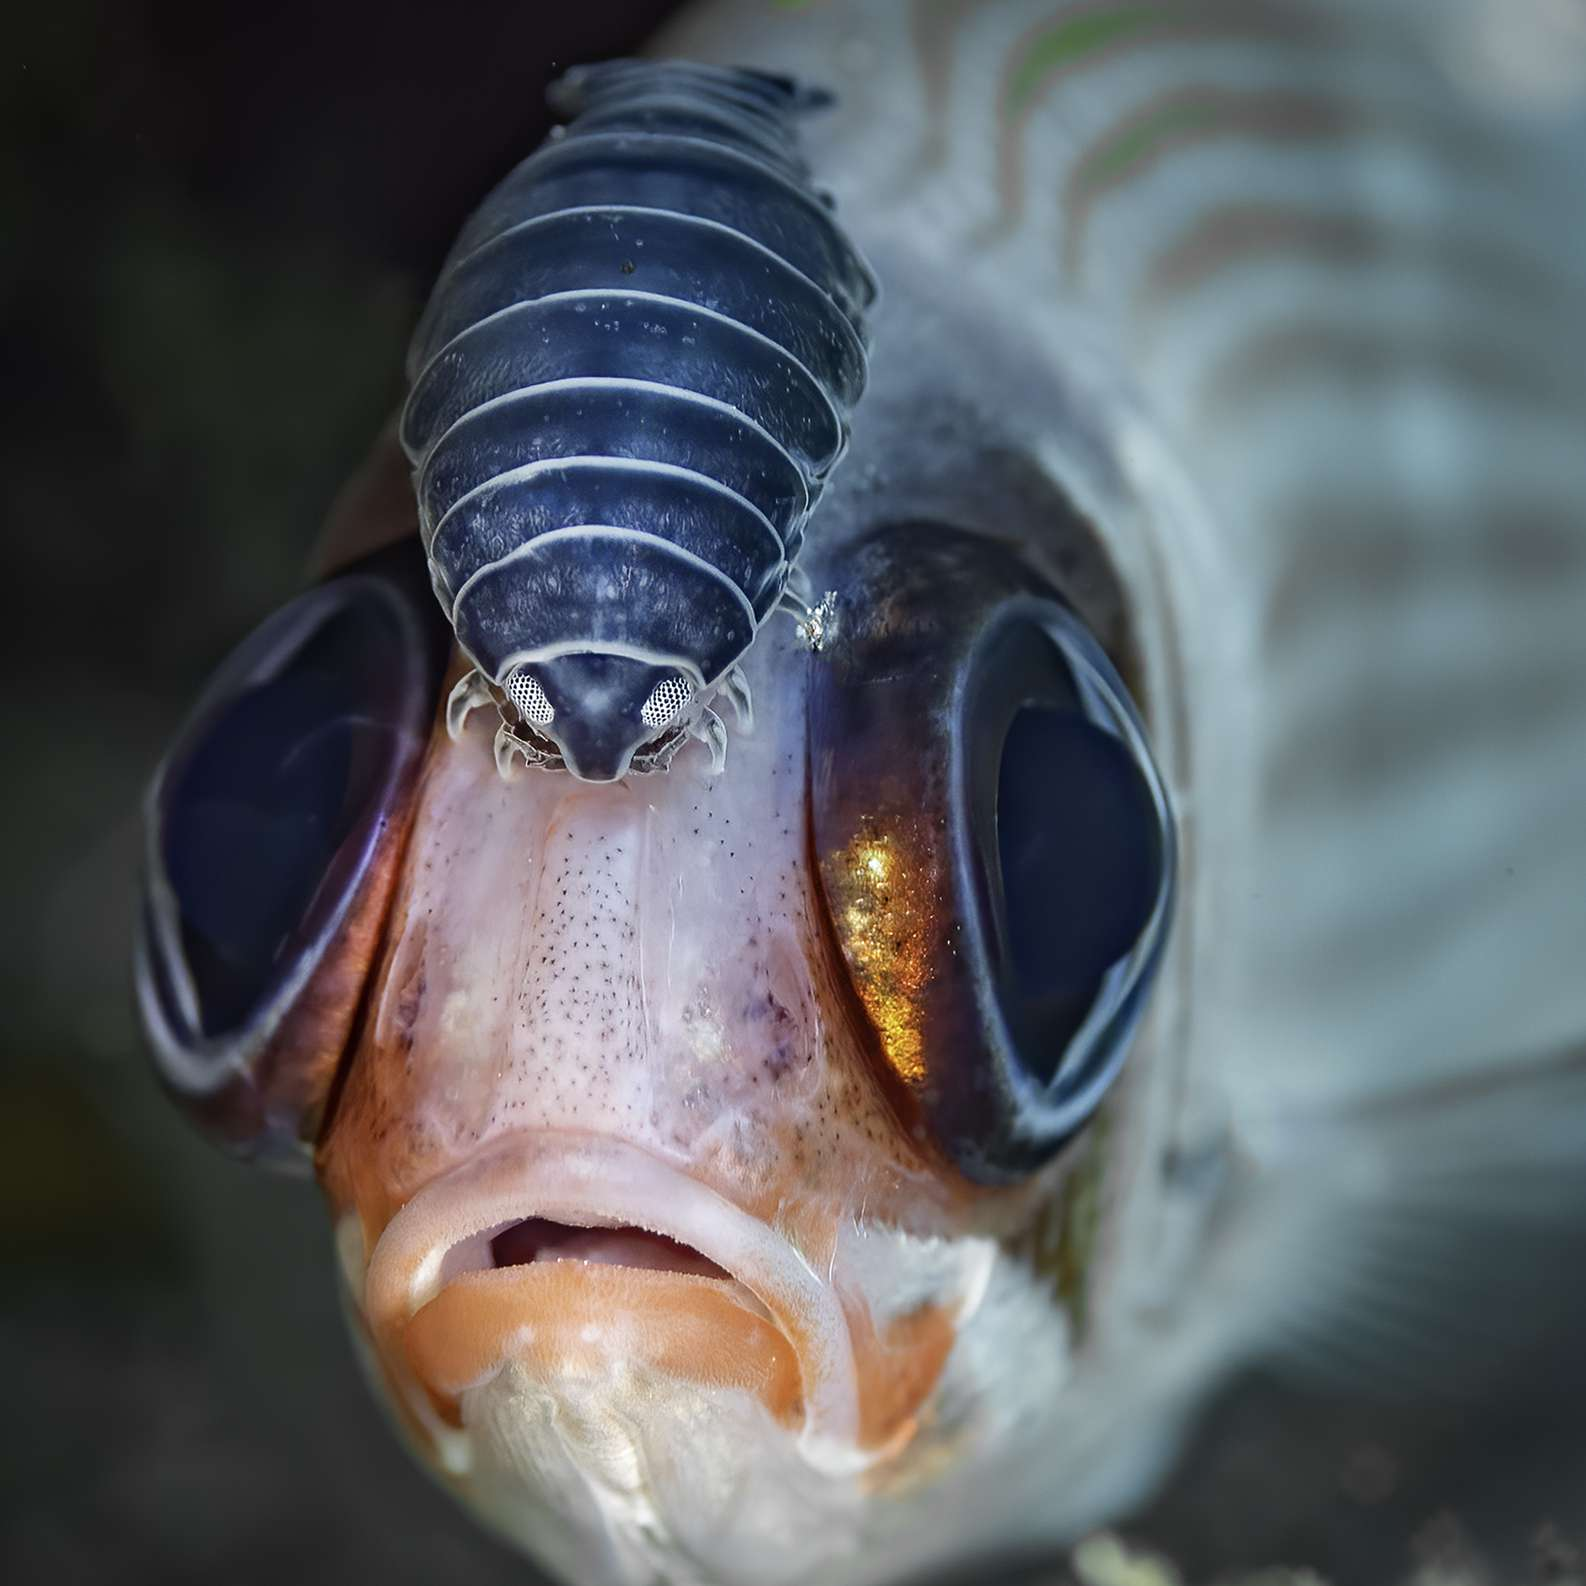 soldier fish with isopod